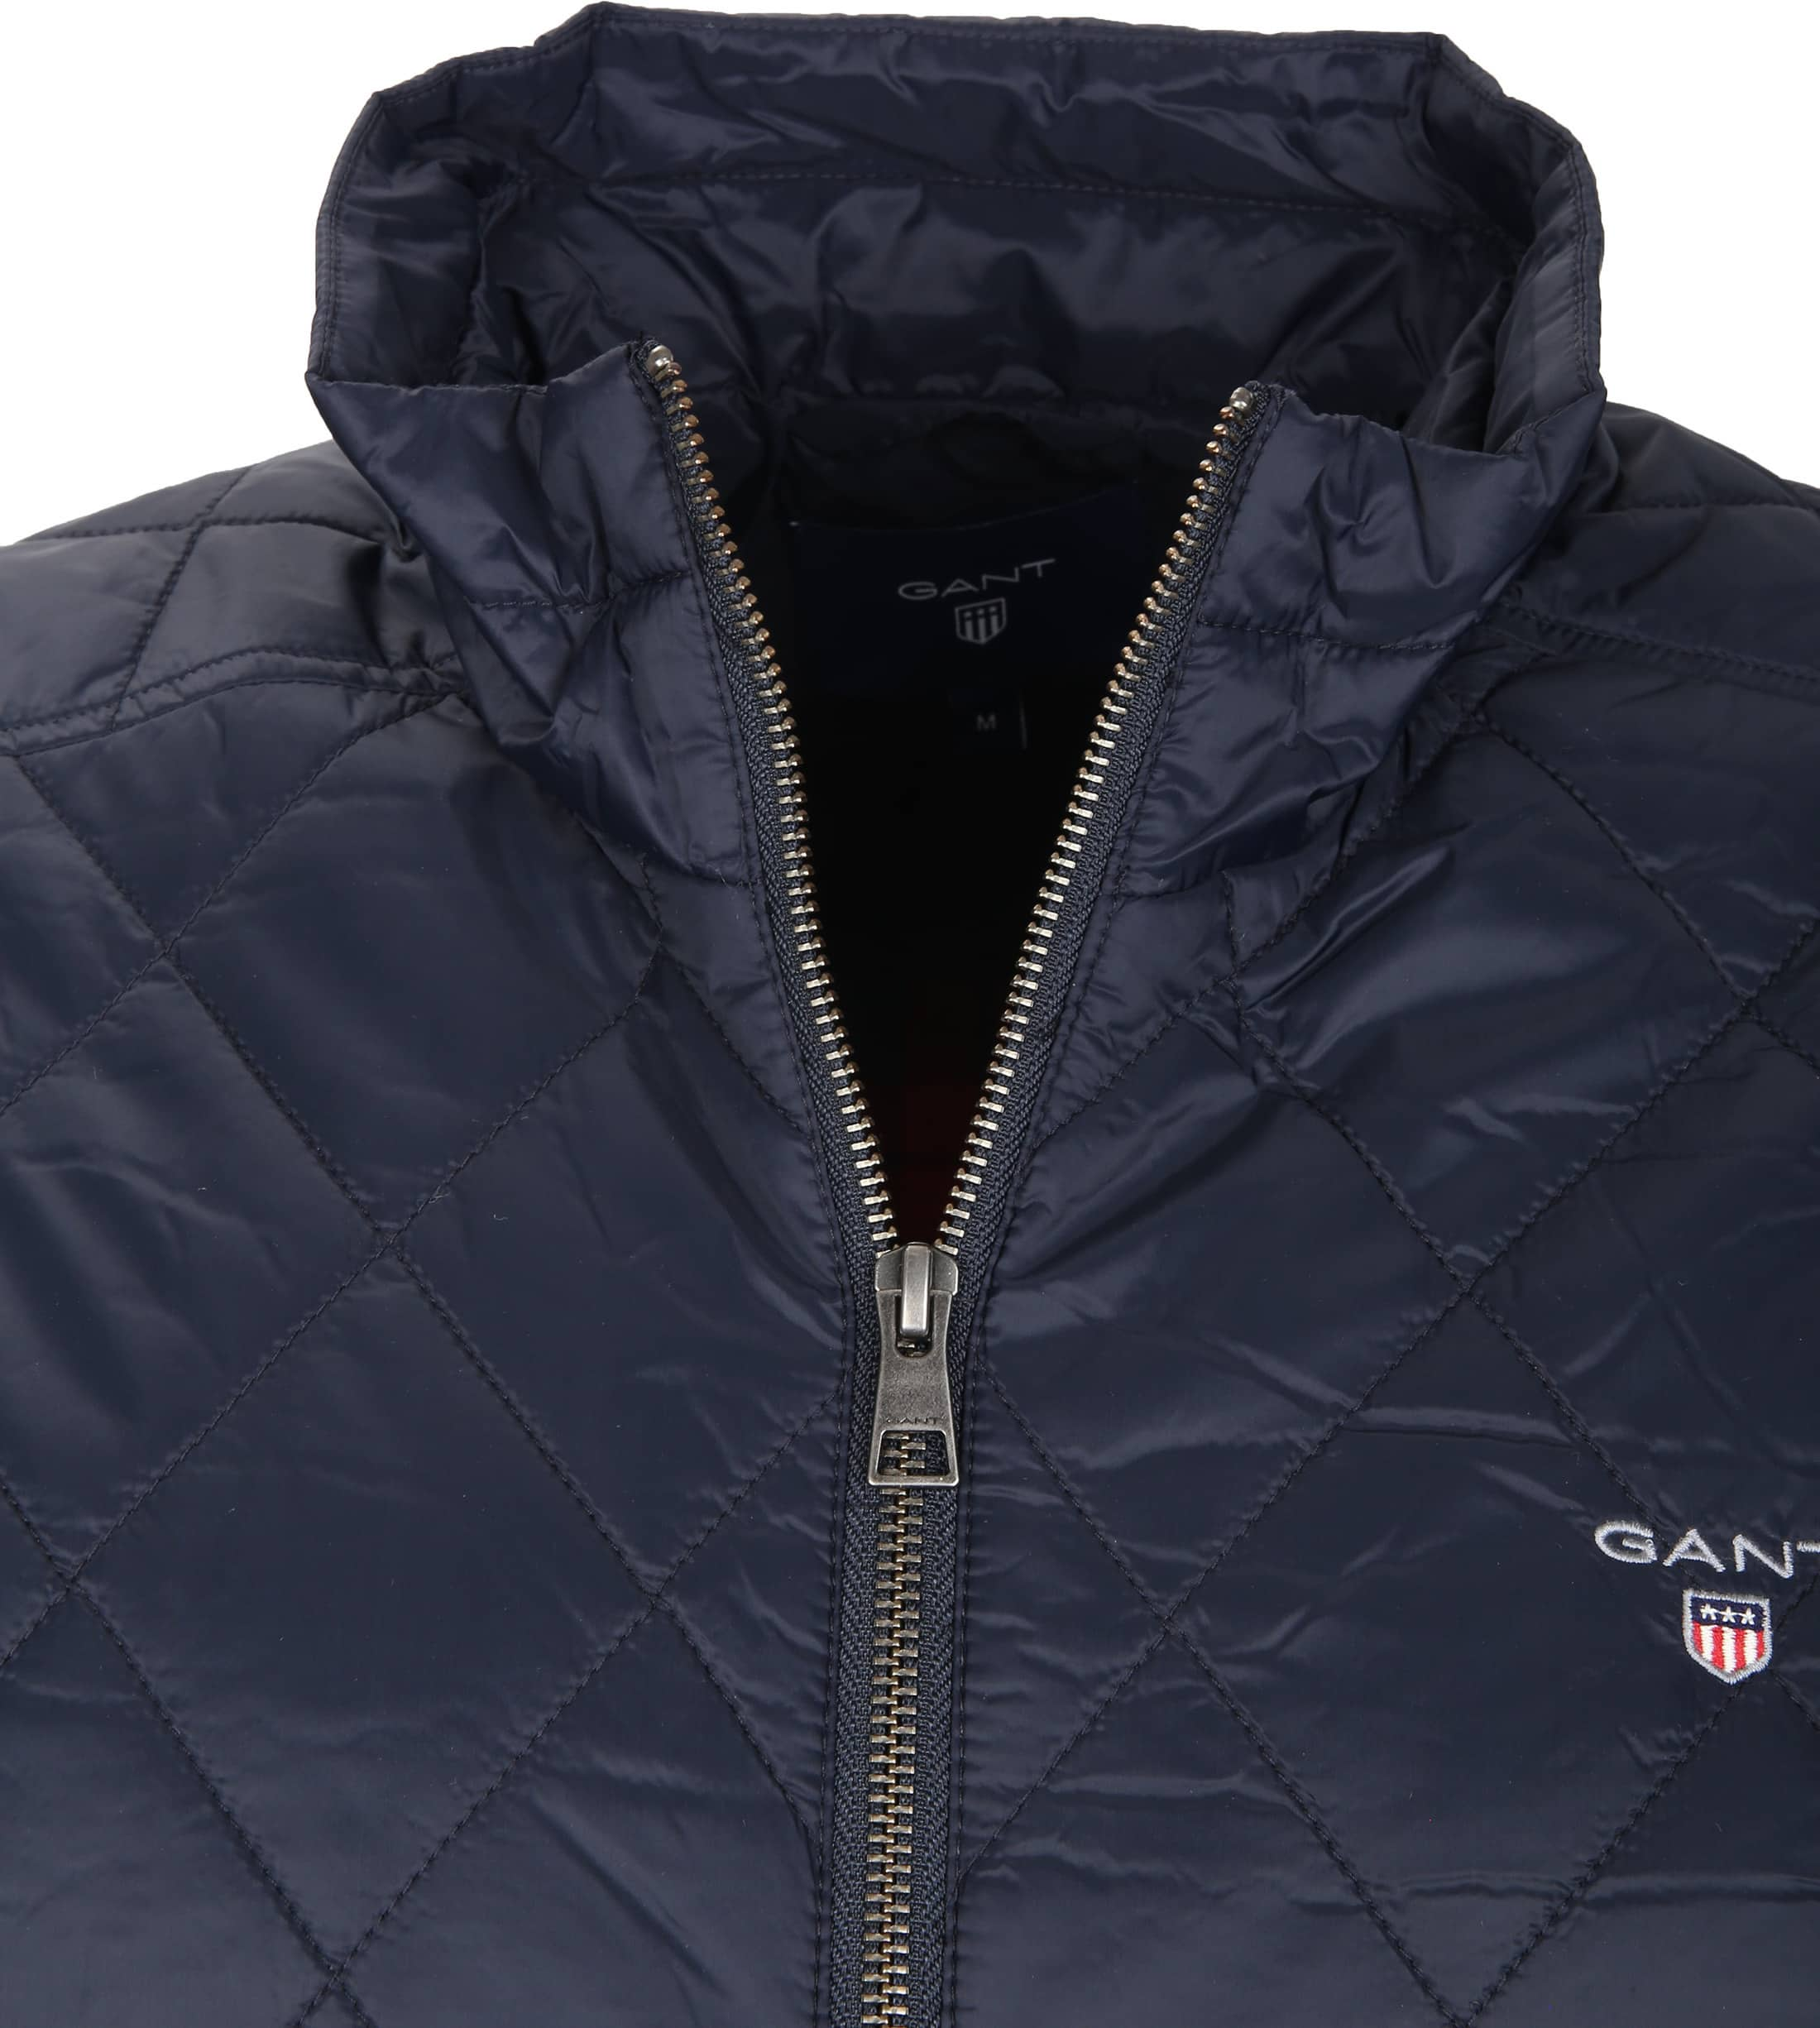 factory authentic 60f06 d83ae Gant Windcheater Jacke Quilted Navy 7001539-405 online ...